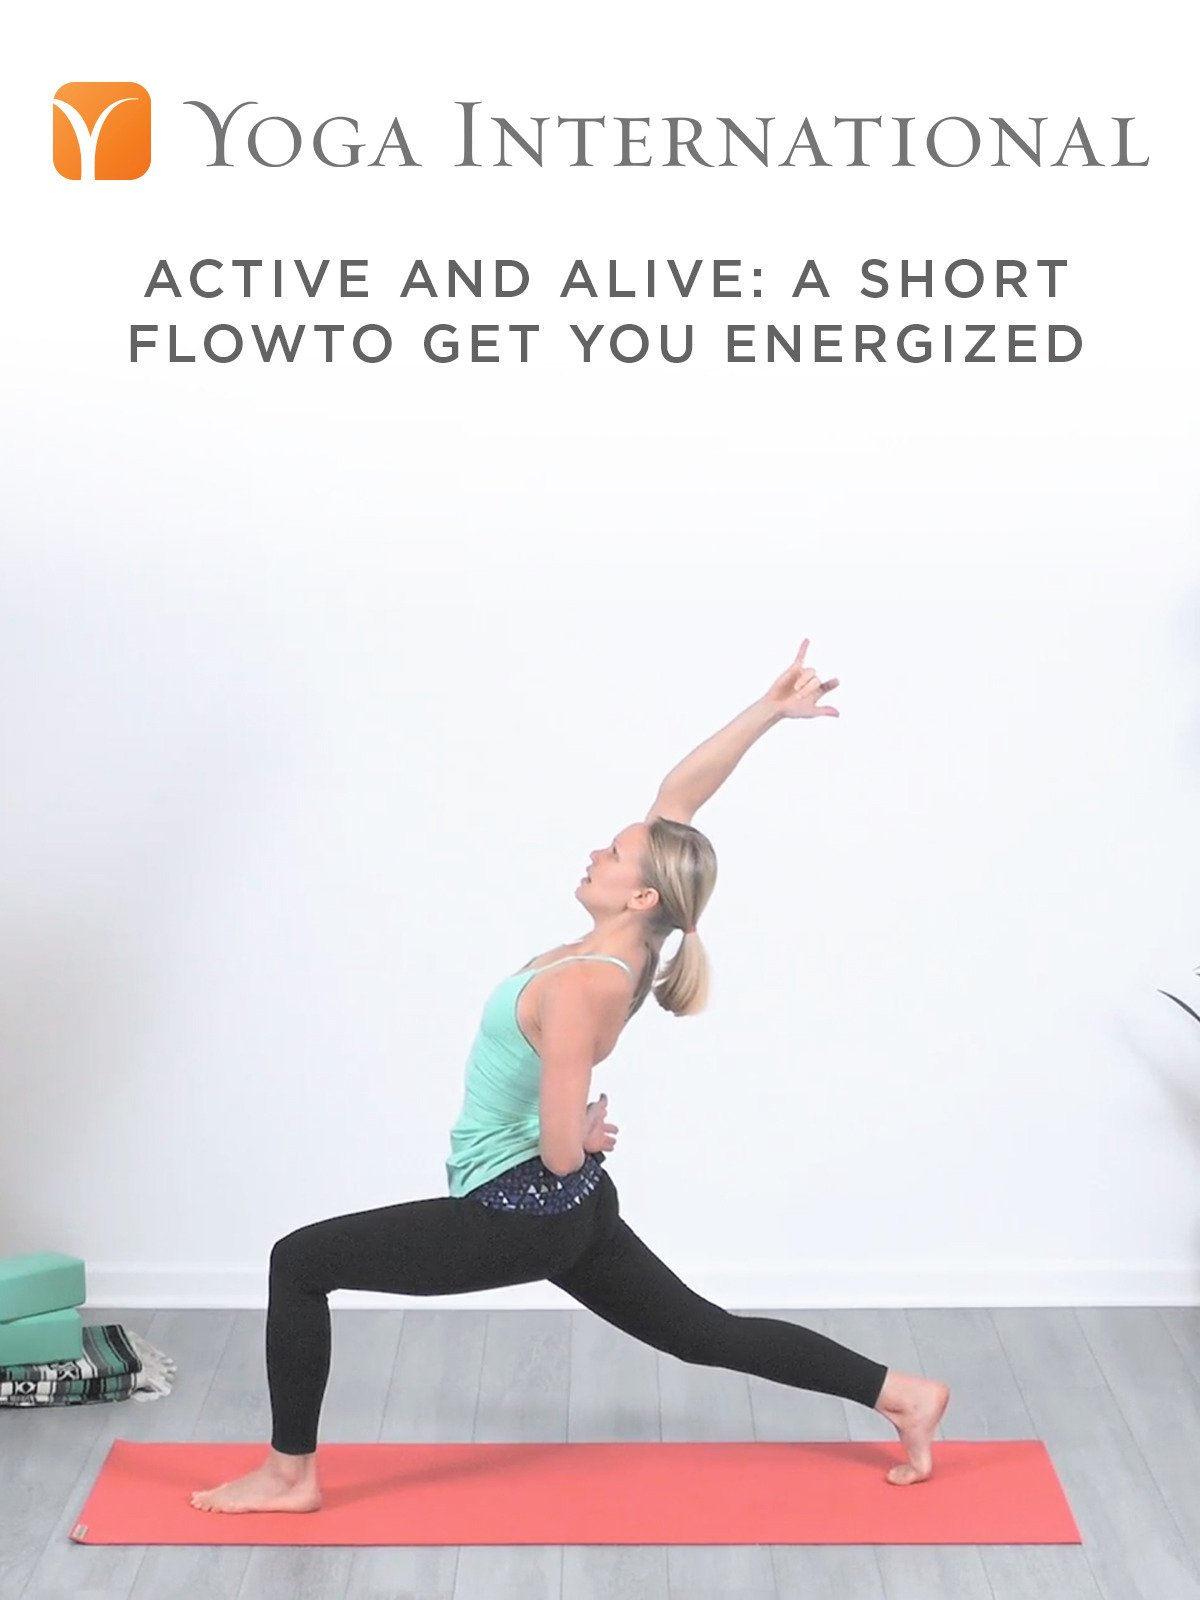 Active and Alive: A Short Flow to Get You Energized